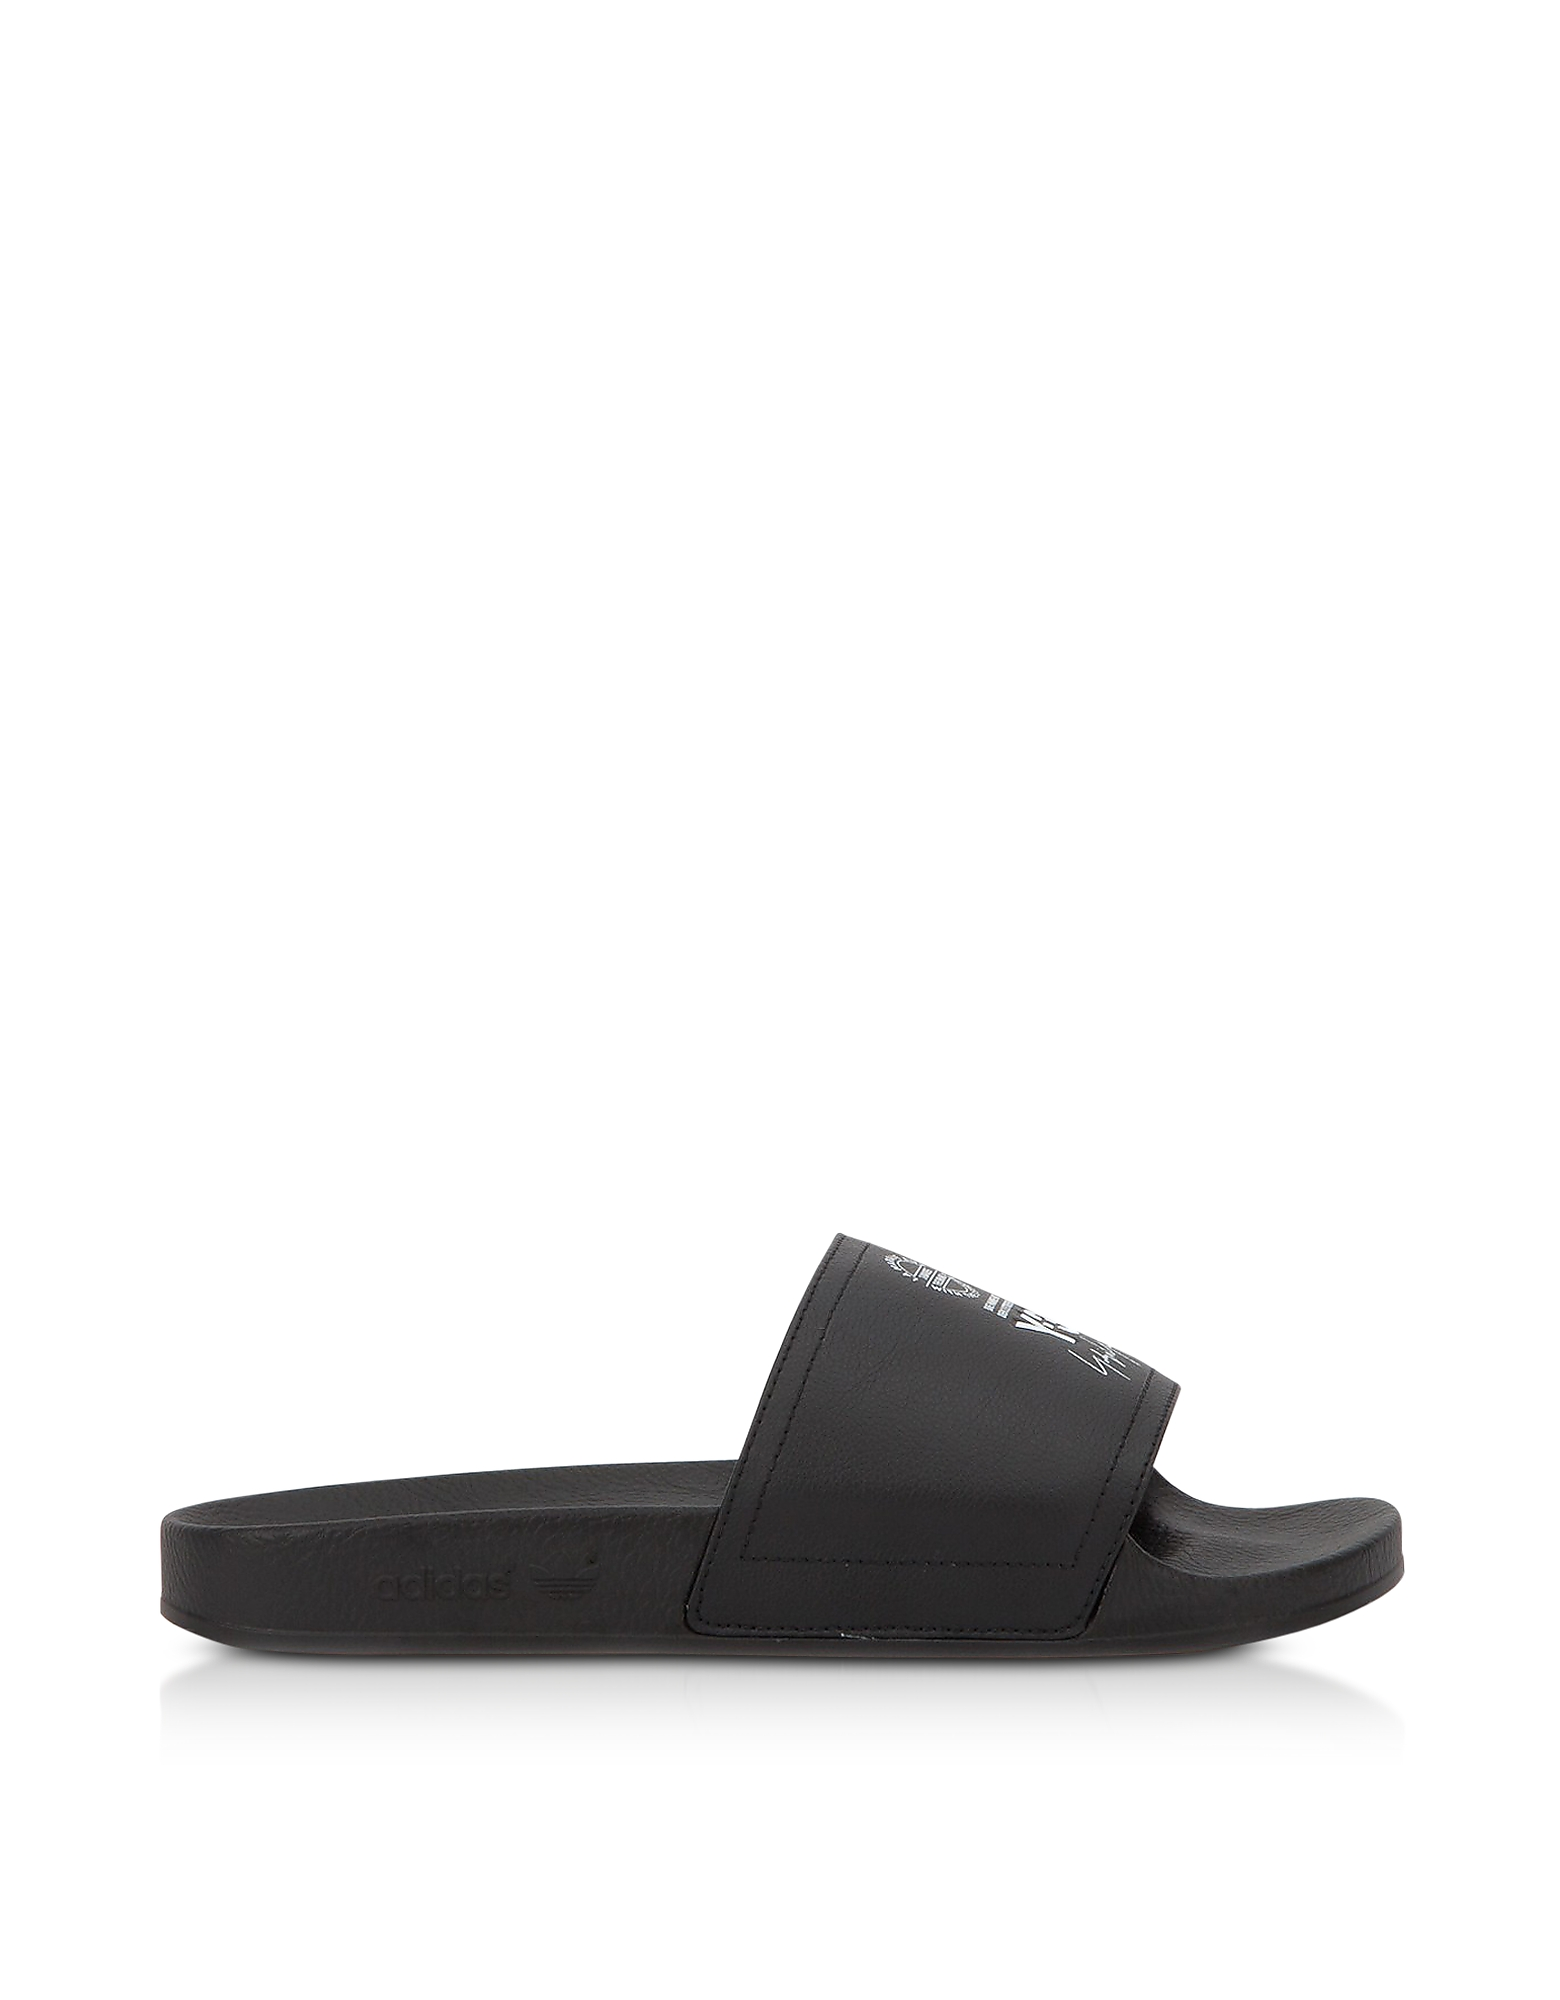 Y-3 Shoes, Black and White Y-3 Adilette Slide Sandals